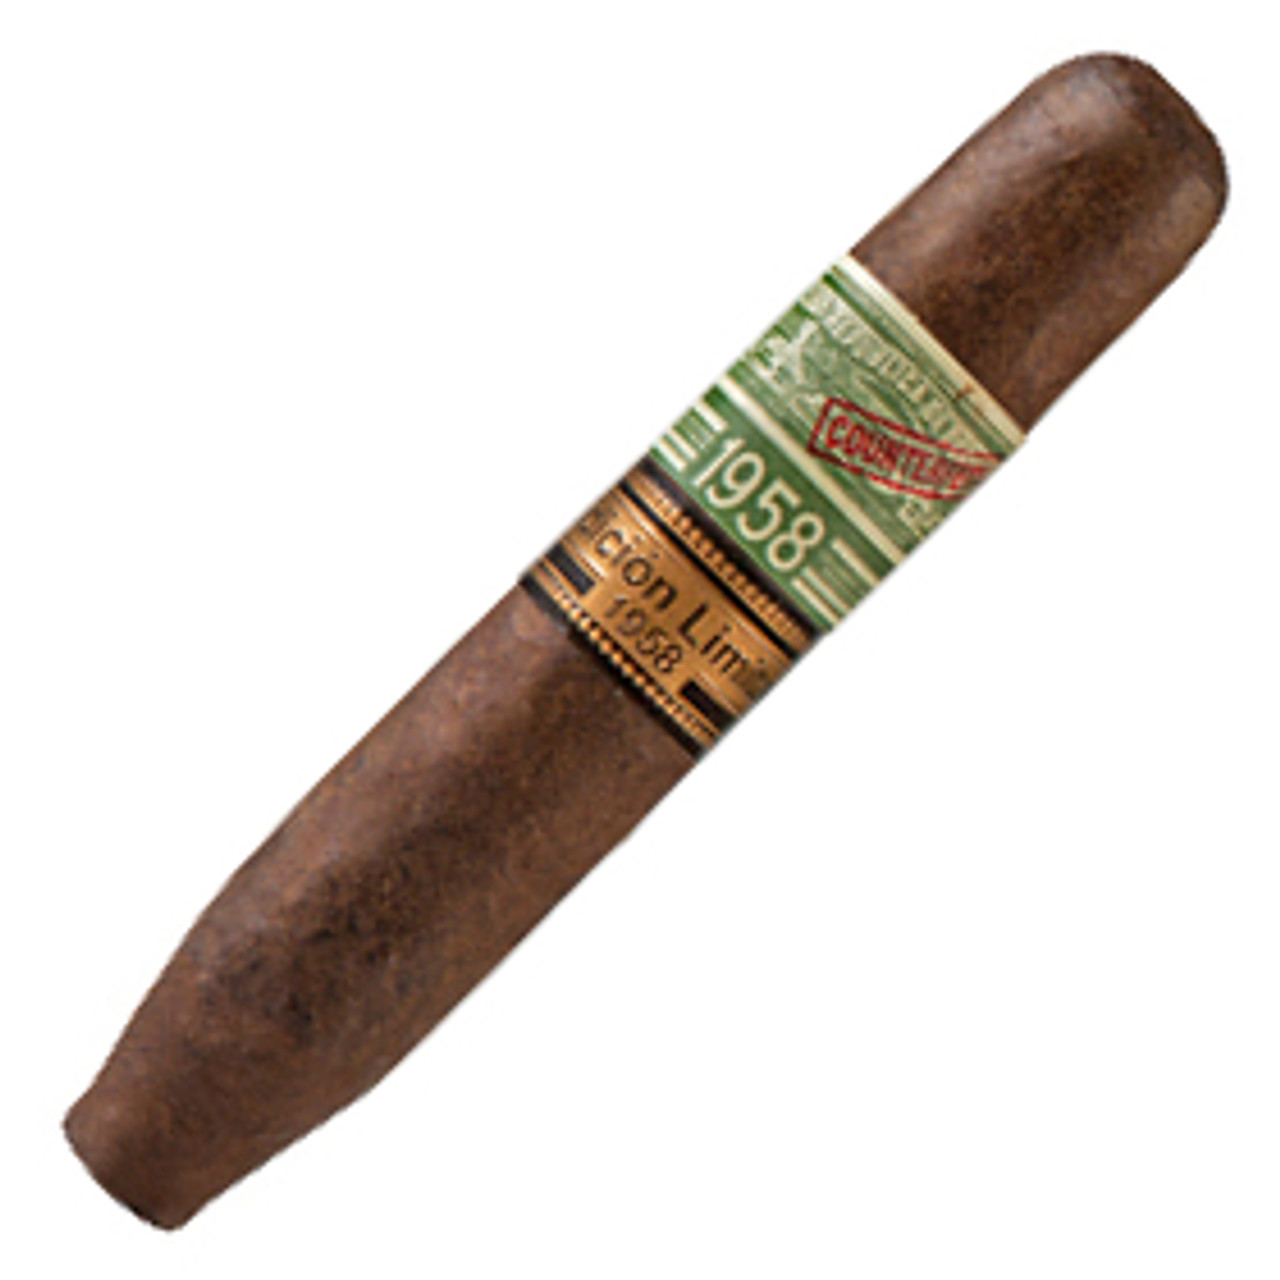 Genuine Pre-Embargo C.C. Edicion Limitada 1958 Gordito Cigars - 4.75 x 52 (Cedar Chest of 25)